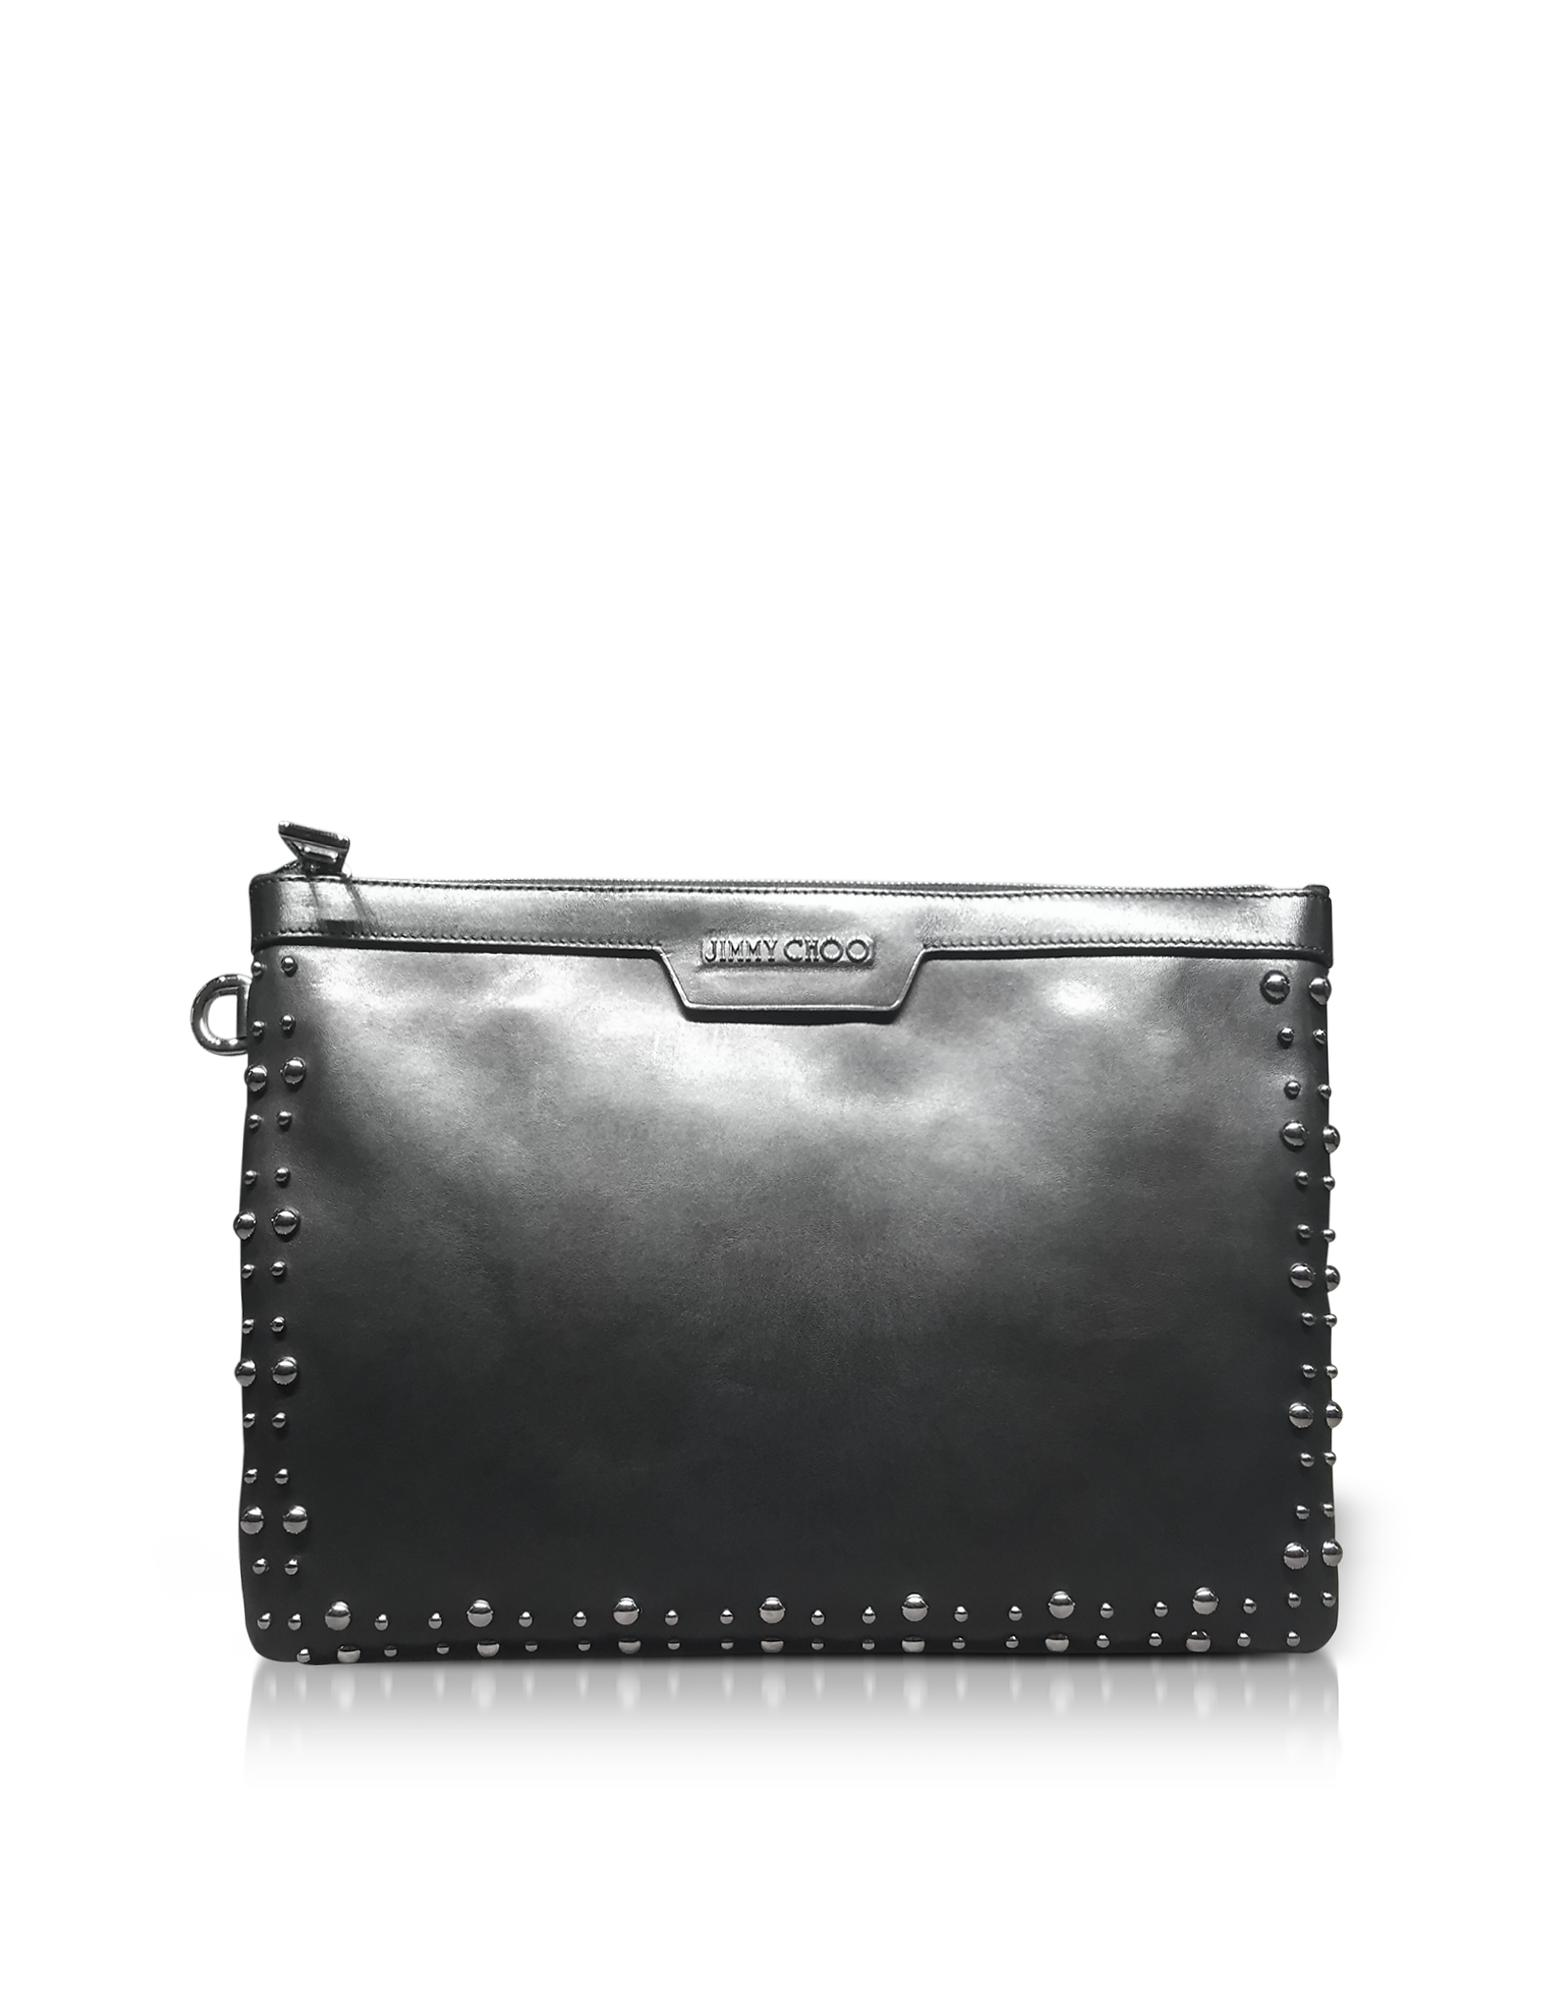 5c71a6036e9 Lyst - Jimmy Choo Derek Black Leather Clutch W/pearl Studs in Black ...